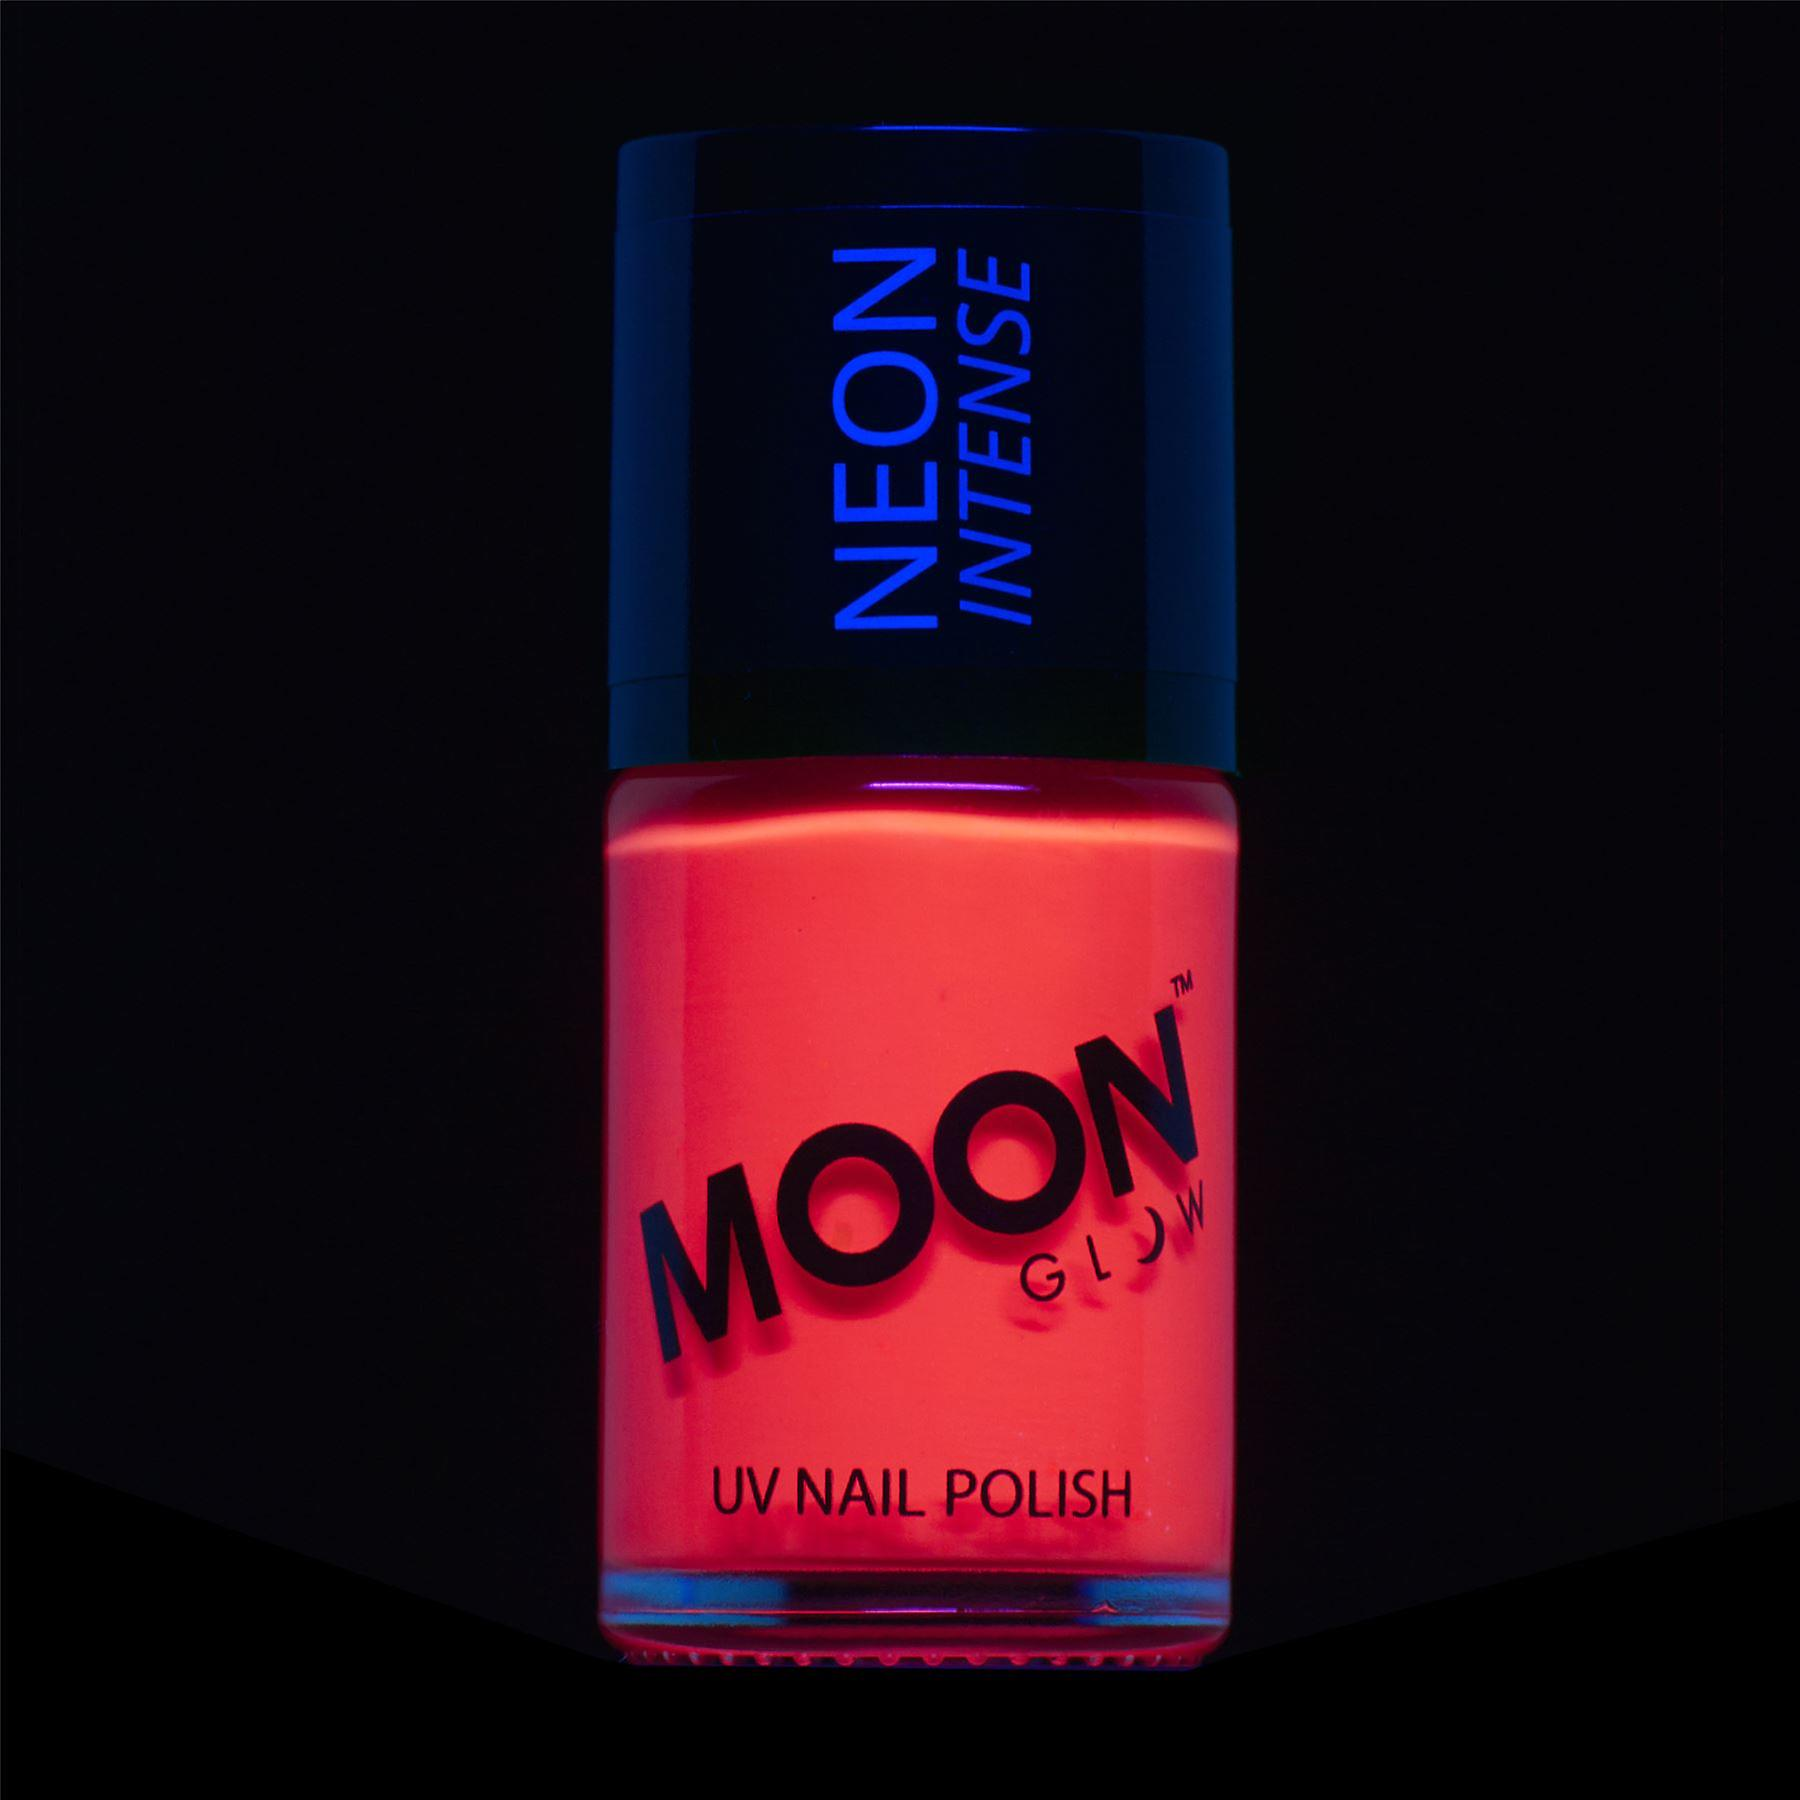 Moon Glow - 14ml Neon UV Nail Varnish - Intense Red